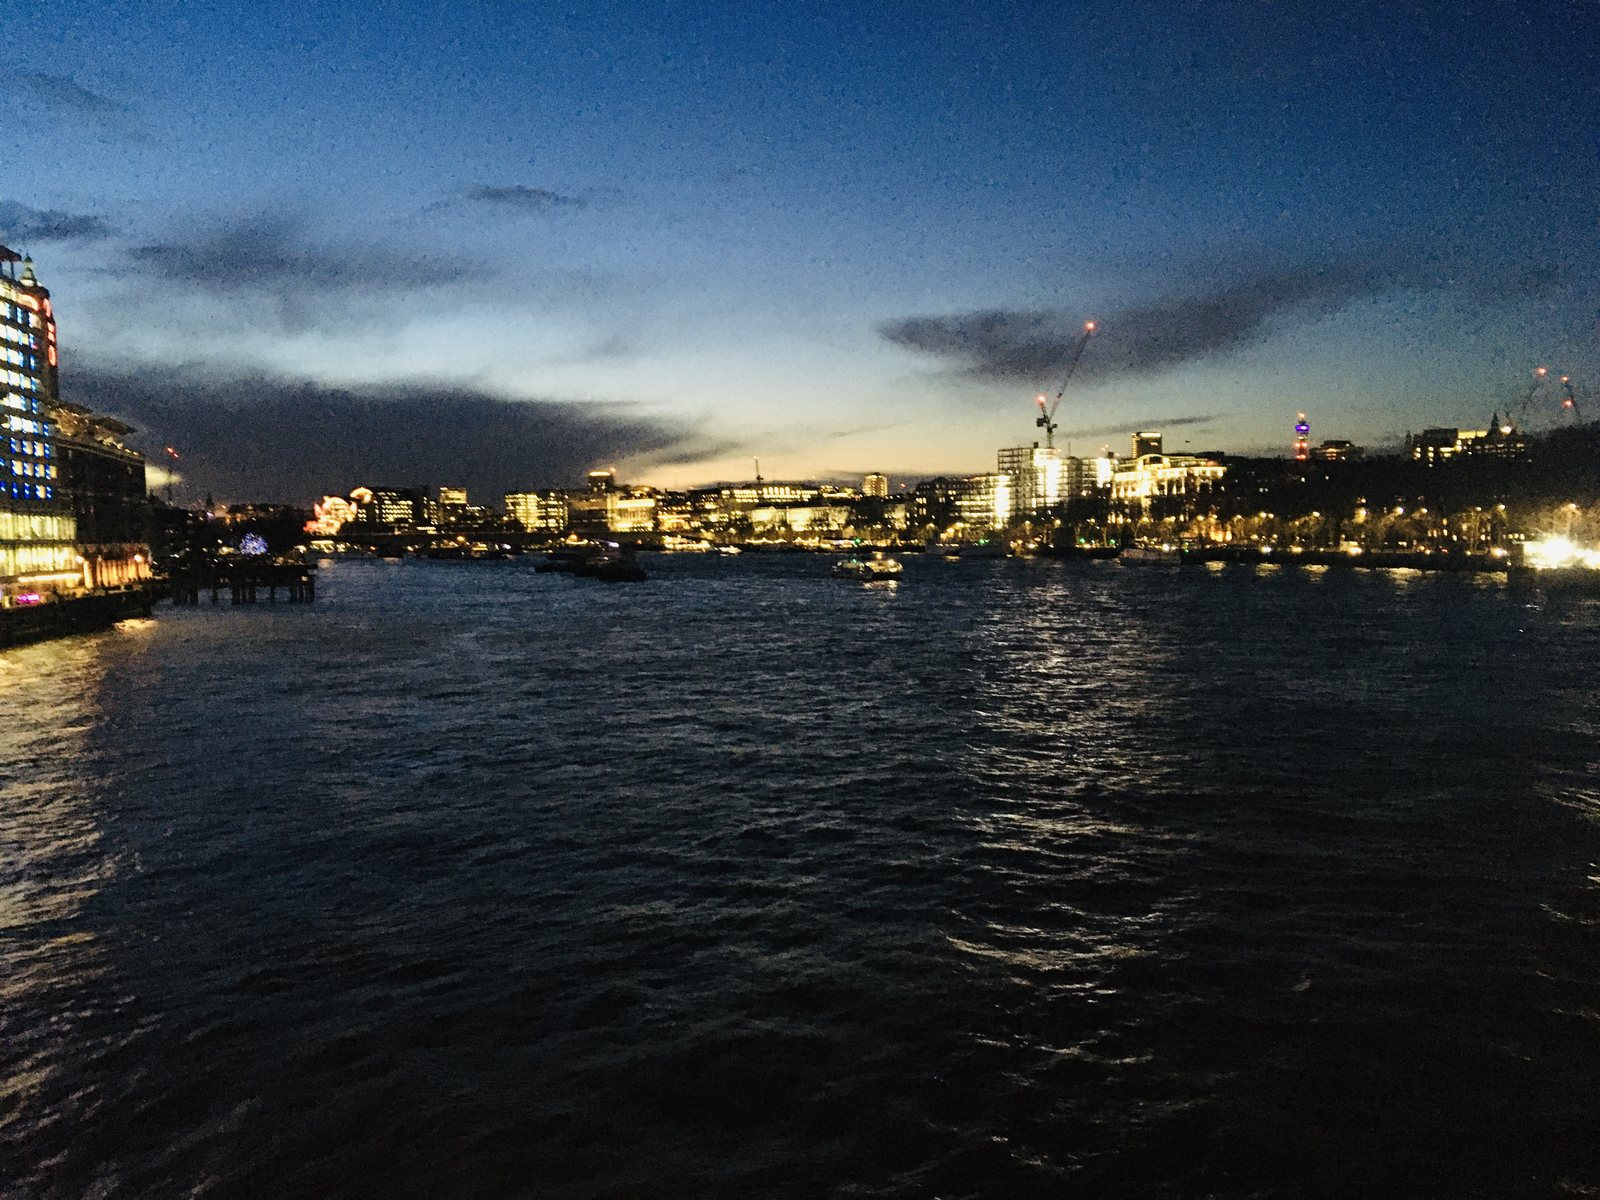 Sunset over the River Thames at London